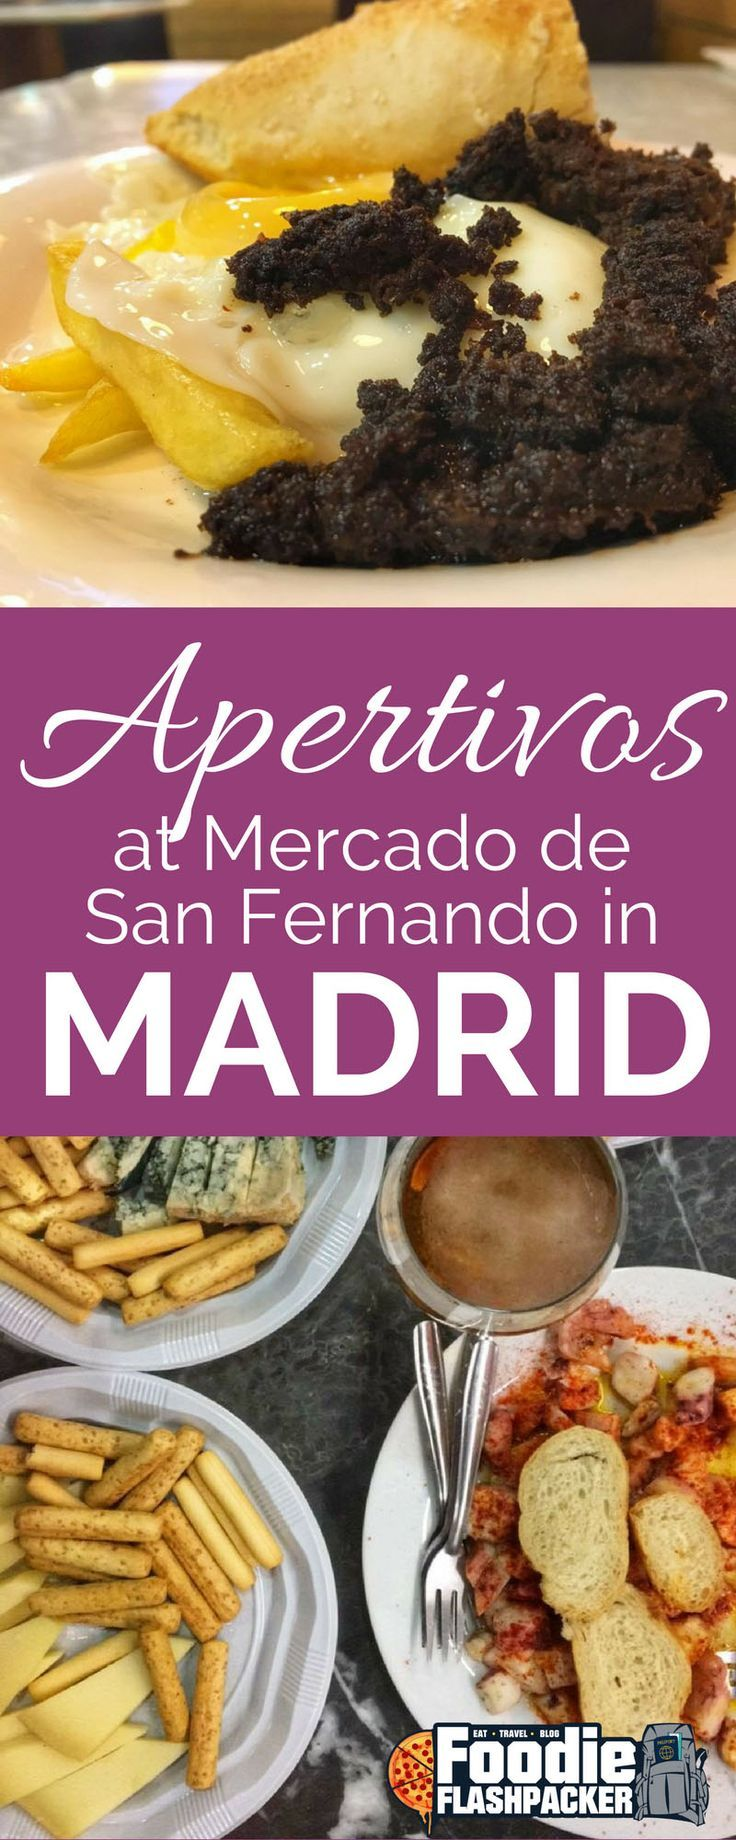 I've found one of my new favorite things in life-- aperitivos. Specifically, aperitivos from Mercado de San Fernando in Madrid.  It's really everything I like all at once: sitting around talking with a bunch of friends, trying a bunch of new foods and drinking. I don't know how I didn't know about this before.  Aperitivos is kind of like a Spanish style brunch. You can technically do it any day of the week, but it's most popular on the weekends.